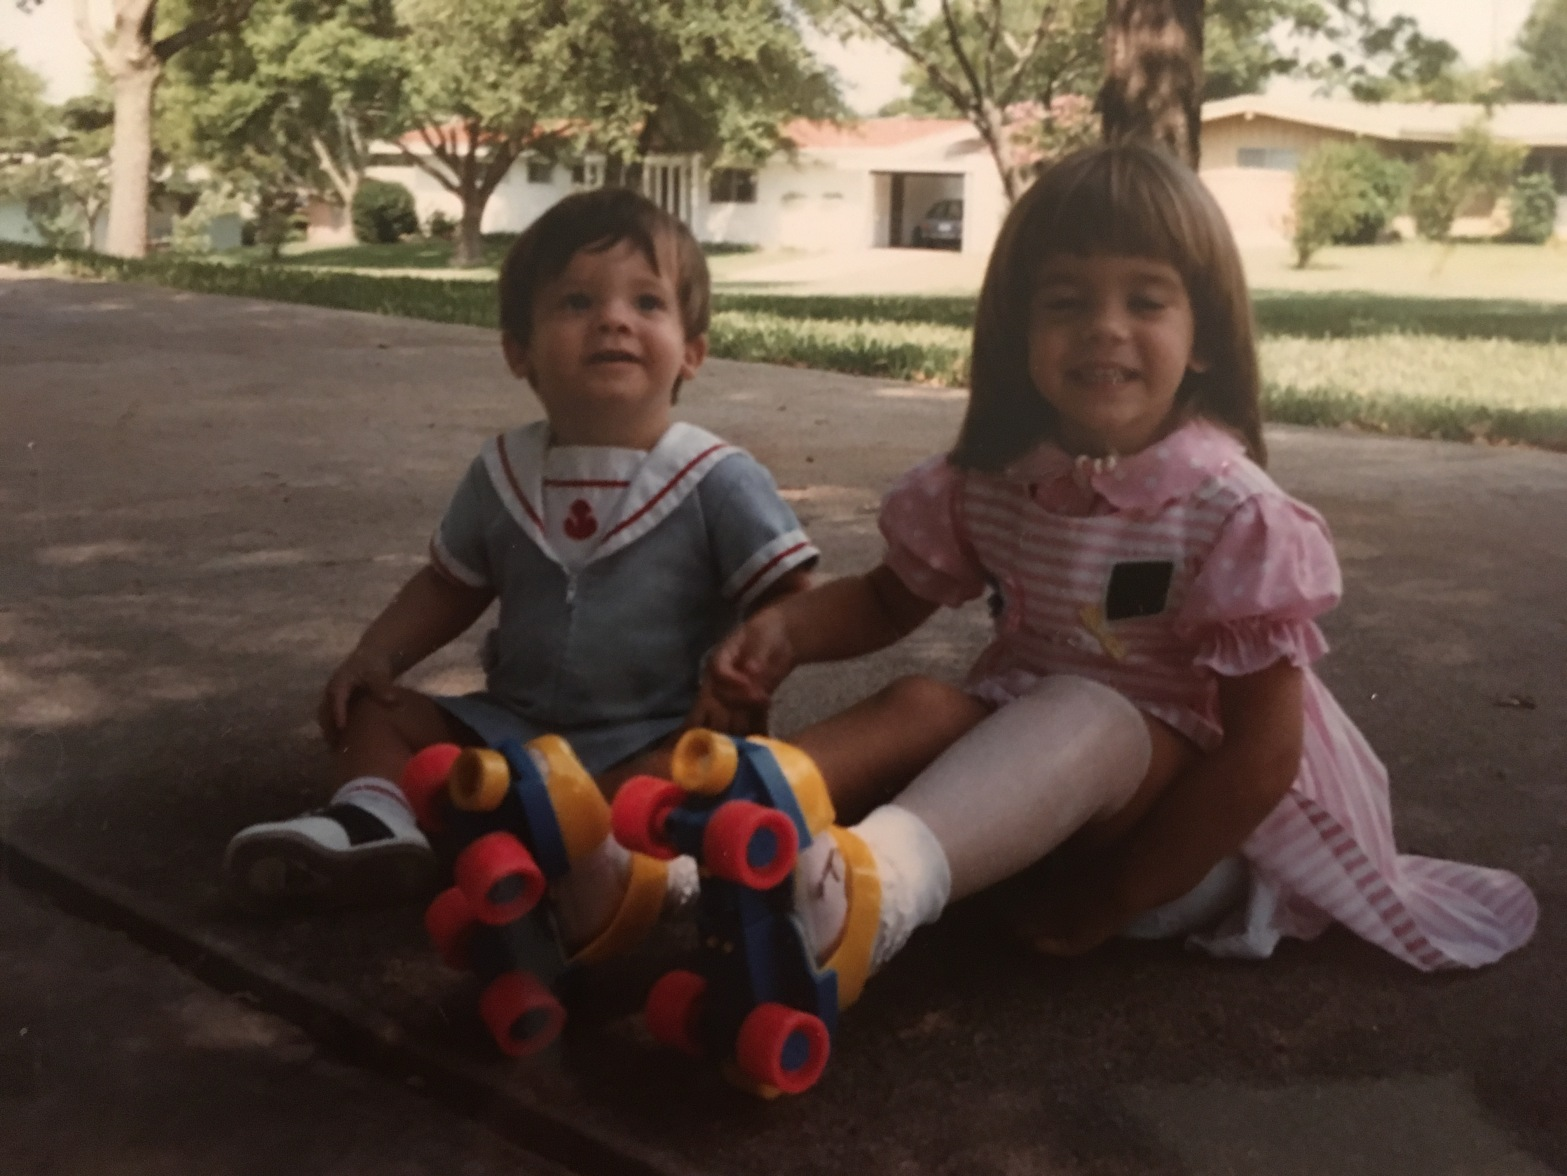 Toddler Sam and Young Emily wearing roller skates and sitting on the sidewalk